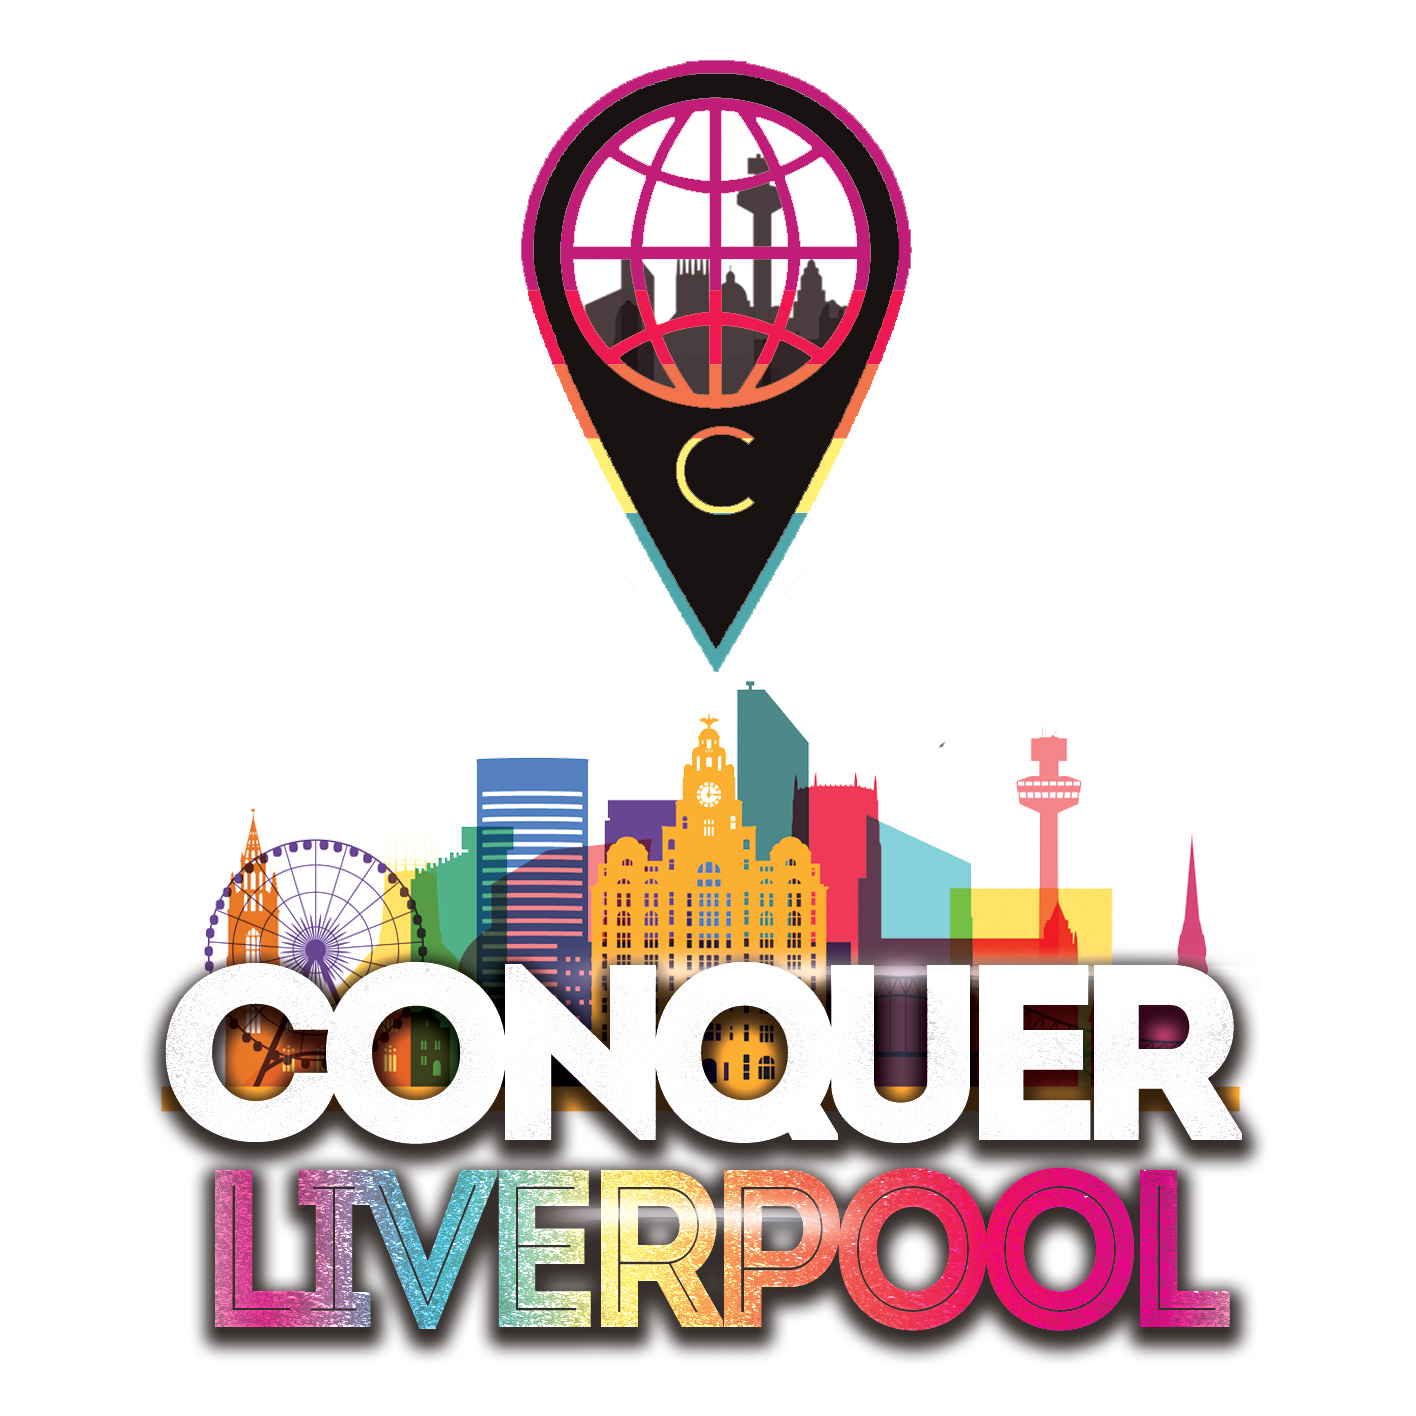 Conquer Liverpool 2019 banner image